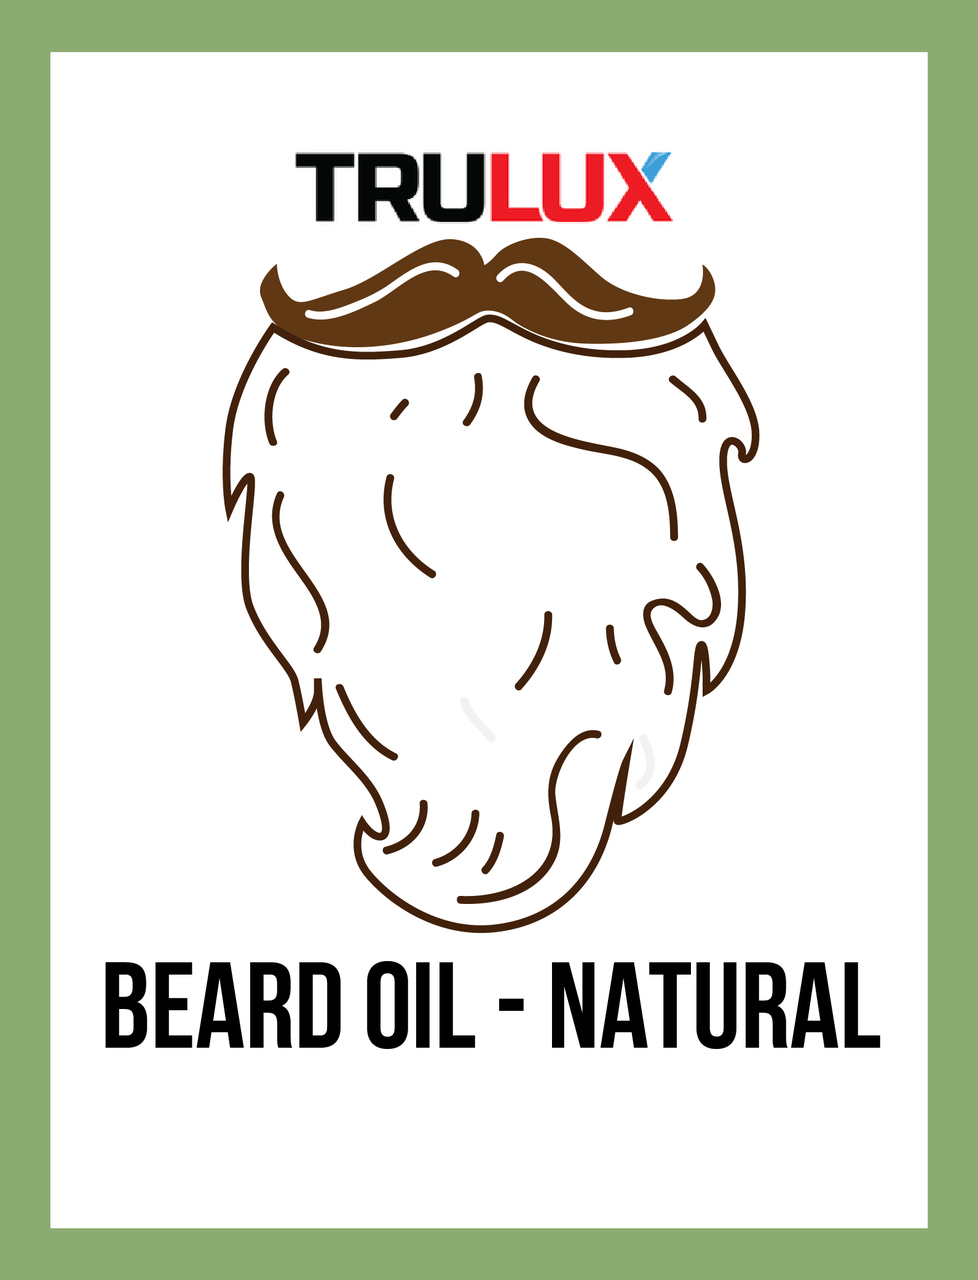 BEARD OIL - NATURAL